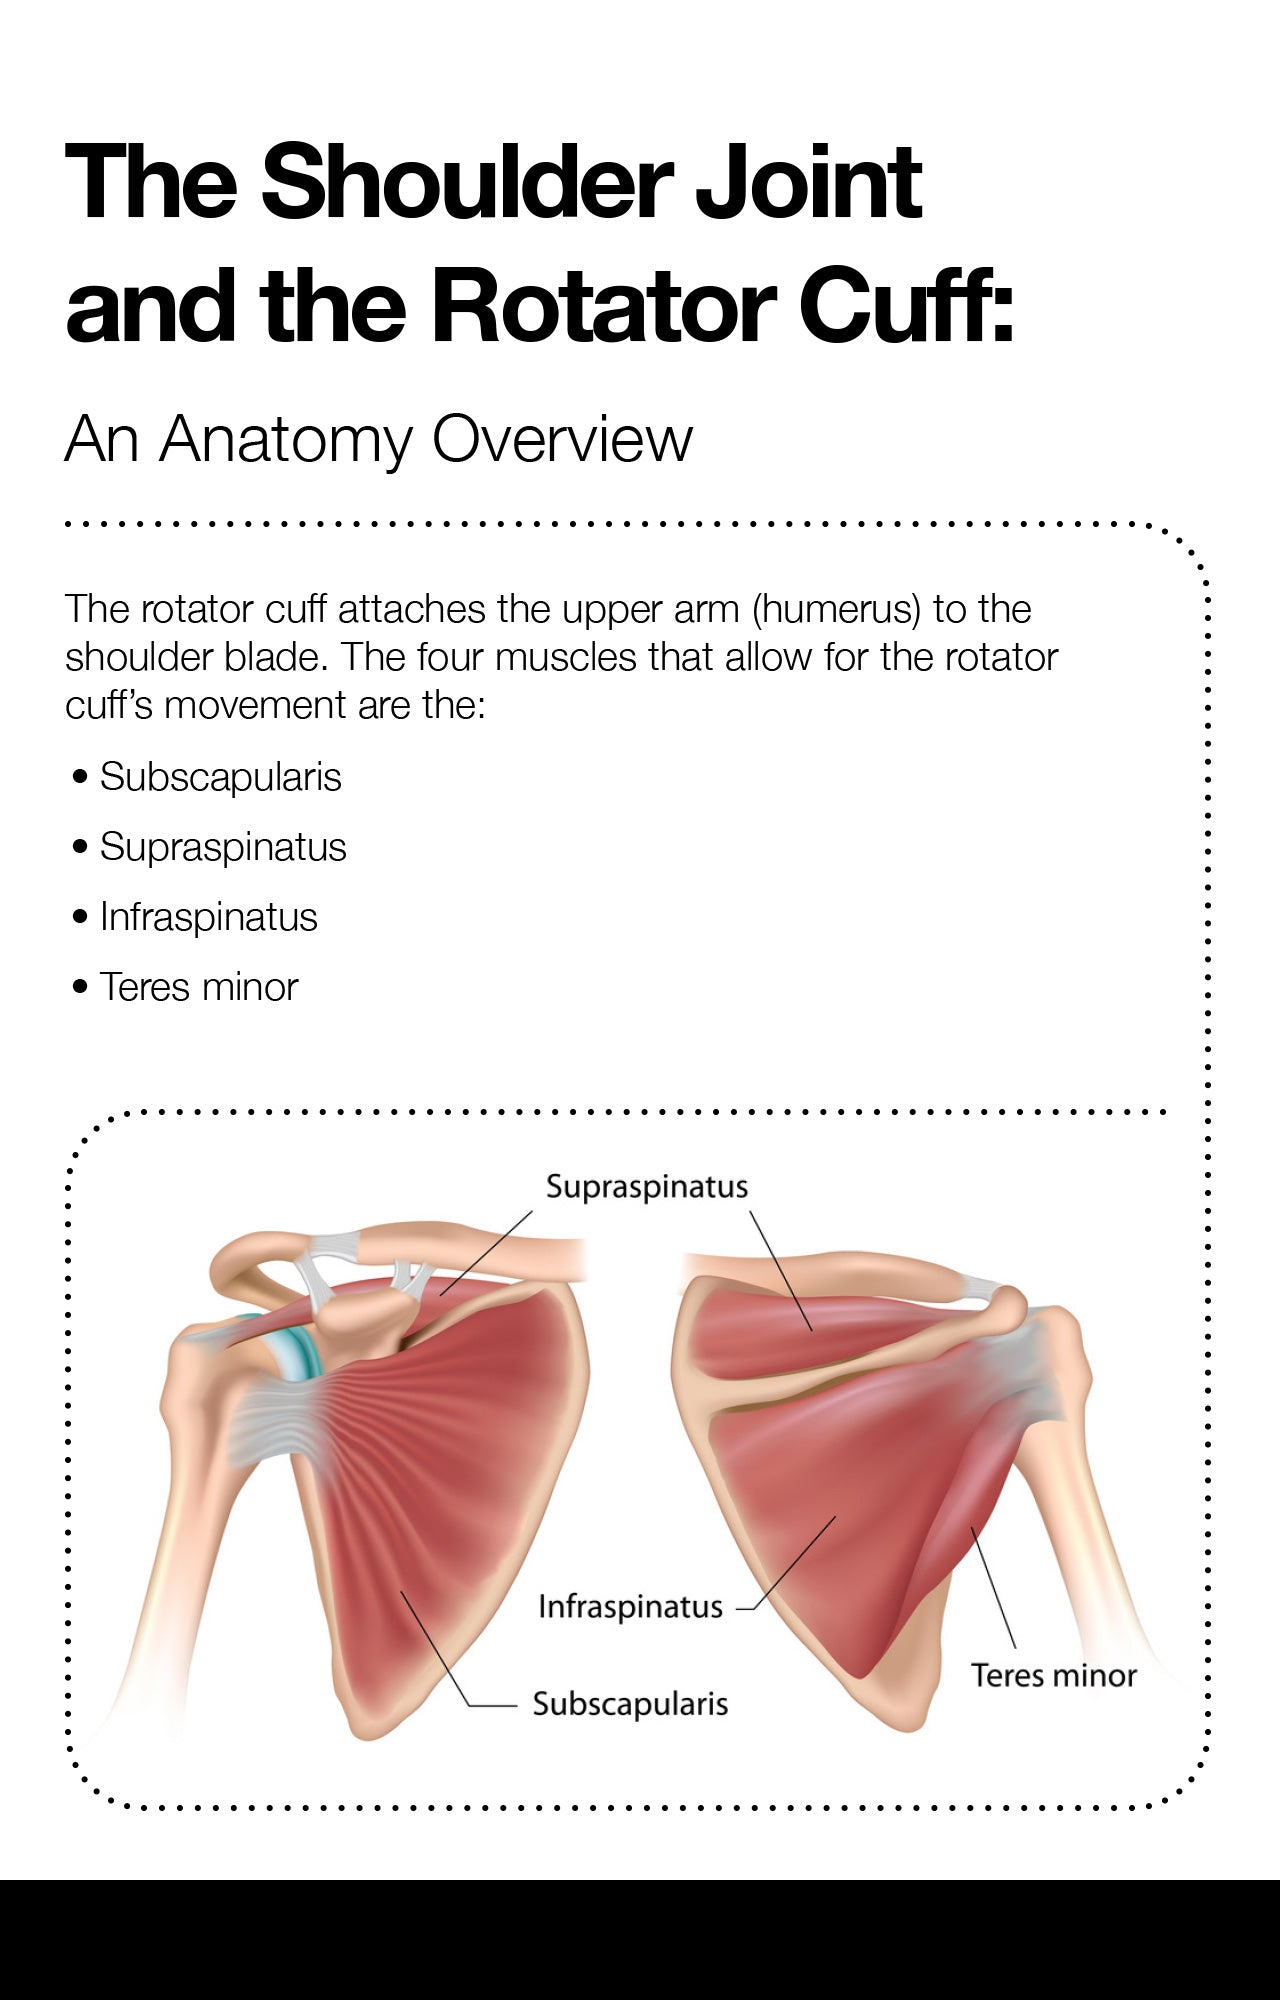 The Shoulder Joint and the Rotator Cuff: An Anatomy Overview